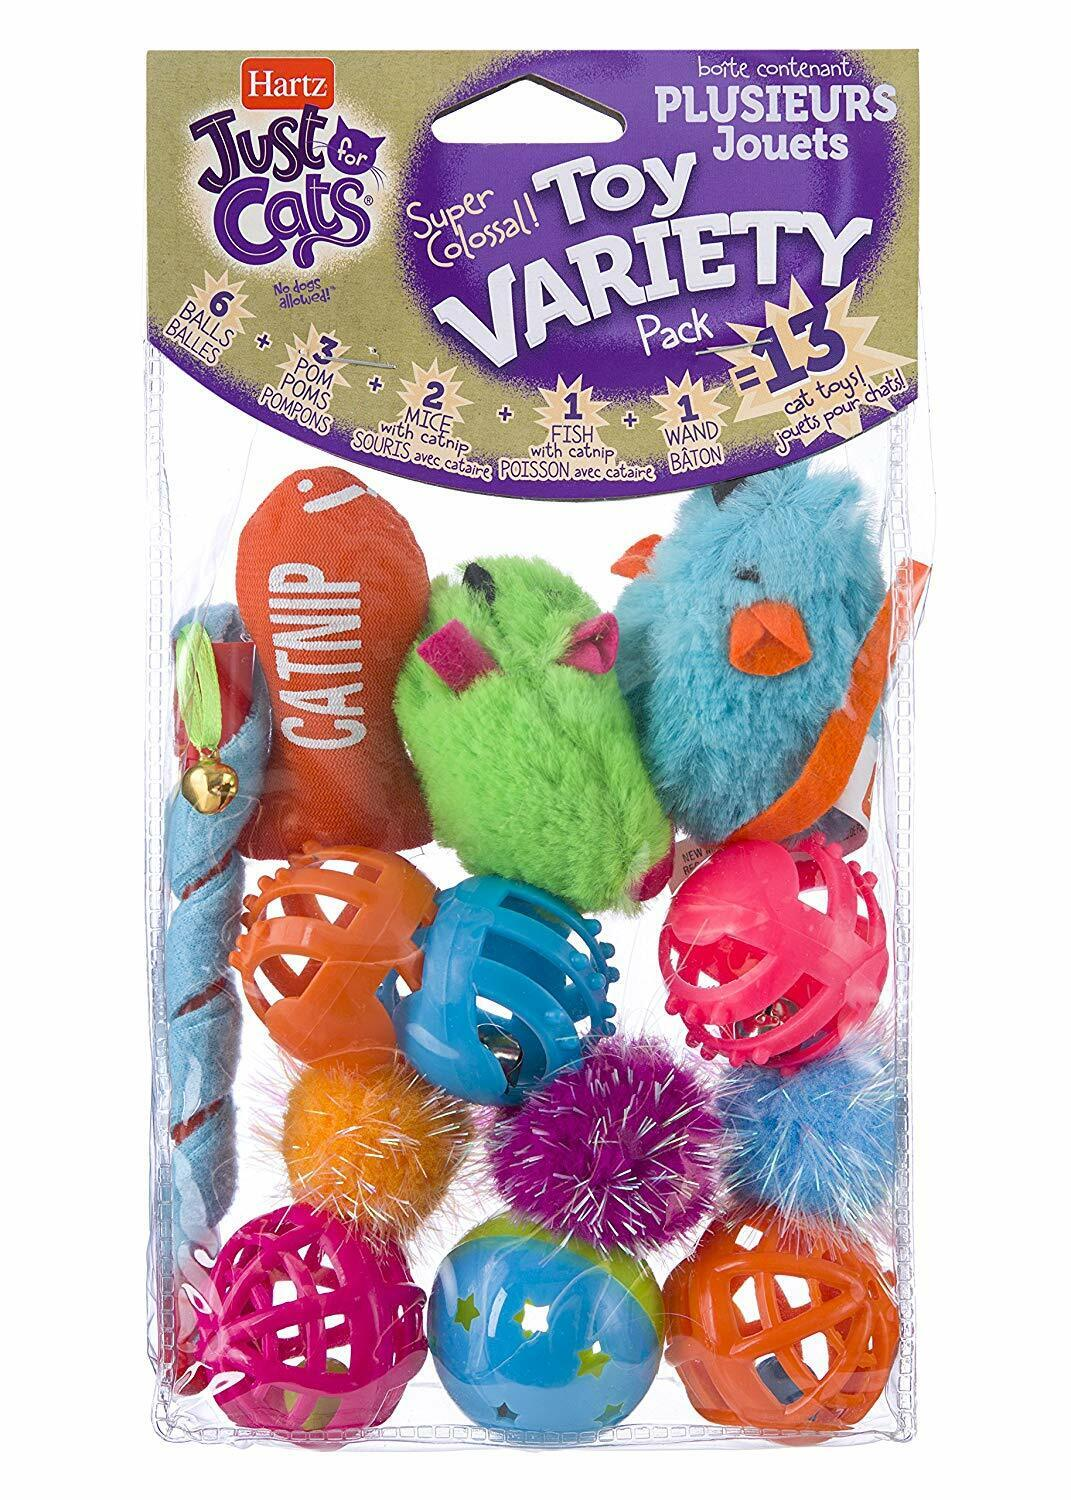 Hartz Just For Cats Cat Toys Value Pack, 13ct